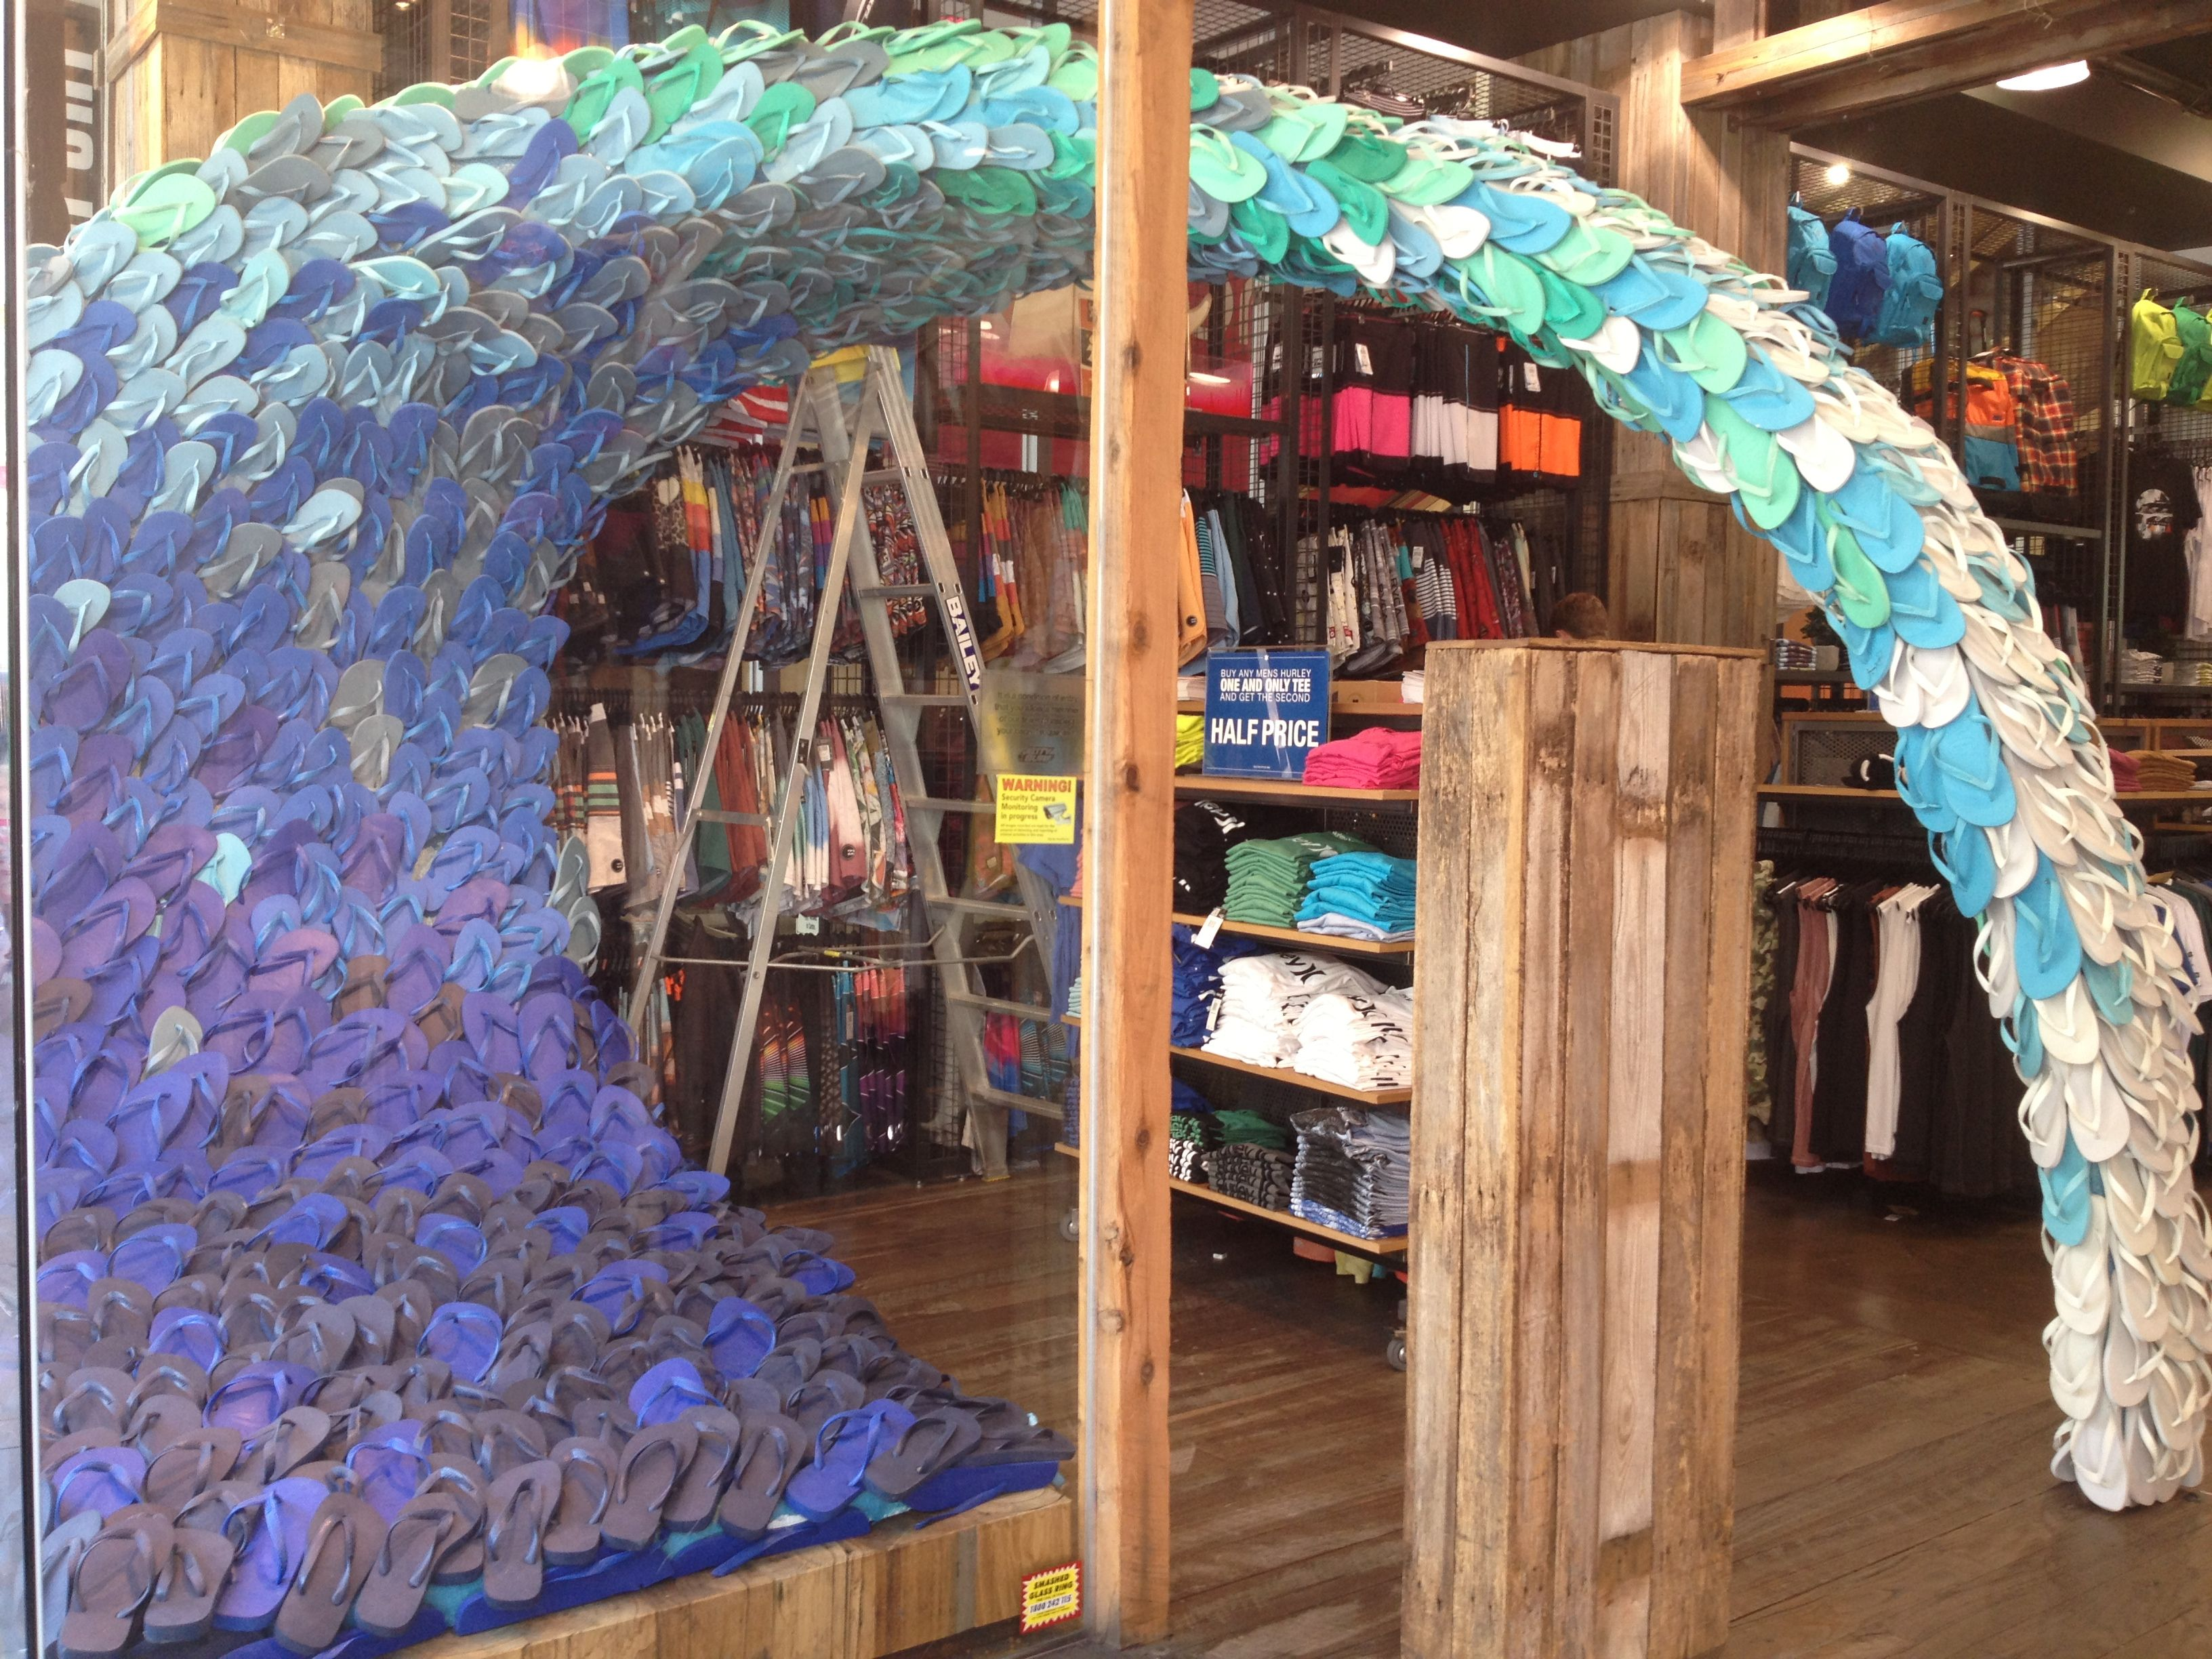 A 7 Foot Wave Made Of Thongs On Display At A Surf Shop In Melbourne Shop Window Design Holiday Window Display Surf Shop